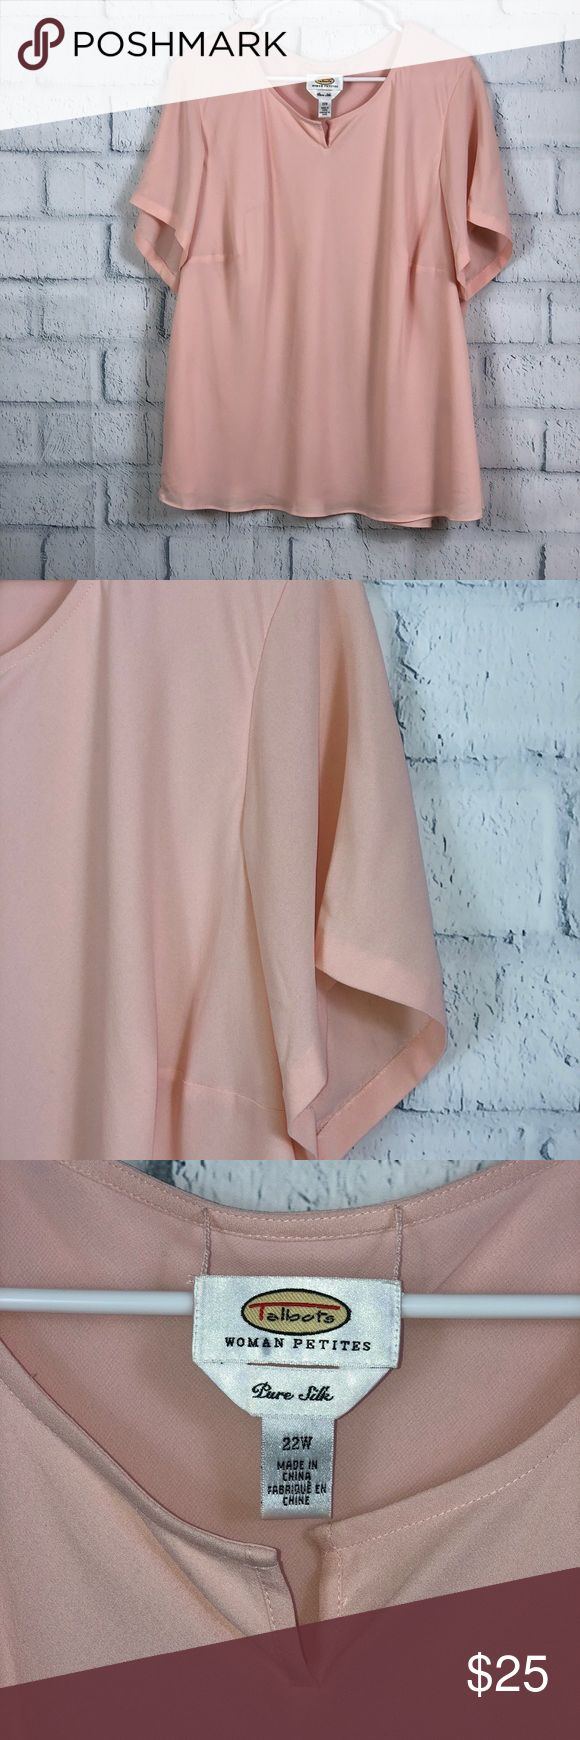 "Talbots Woman Petites Pure Silk Blouse Gorgeous Talbots Woman Petites Blouse Short Sleeve VNeck  Pure Silk Size 22W Pit to Pit:28"" Length: 26.5"" (B5)  Please note that it does have a couple tiny spots. Talbots Tops Blouses"